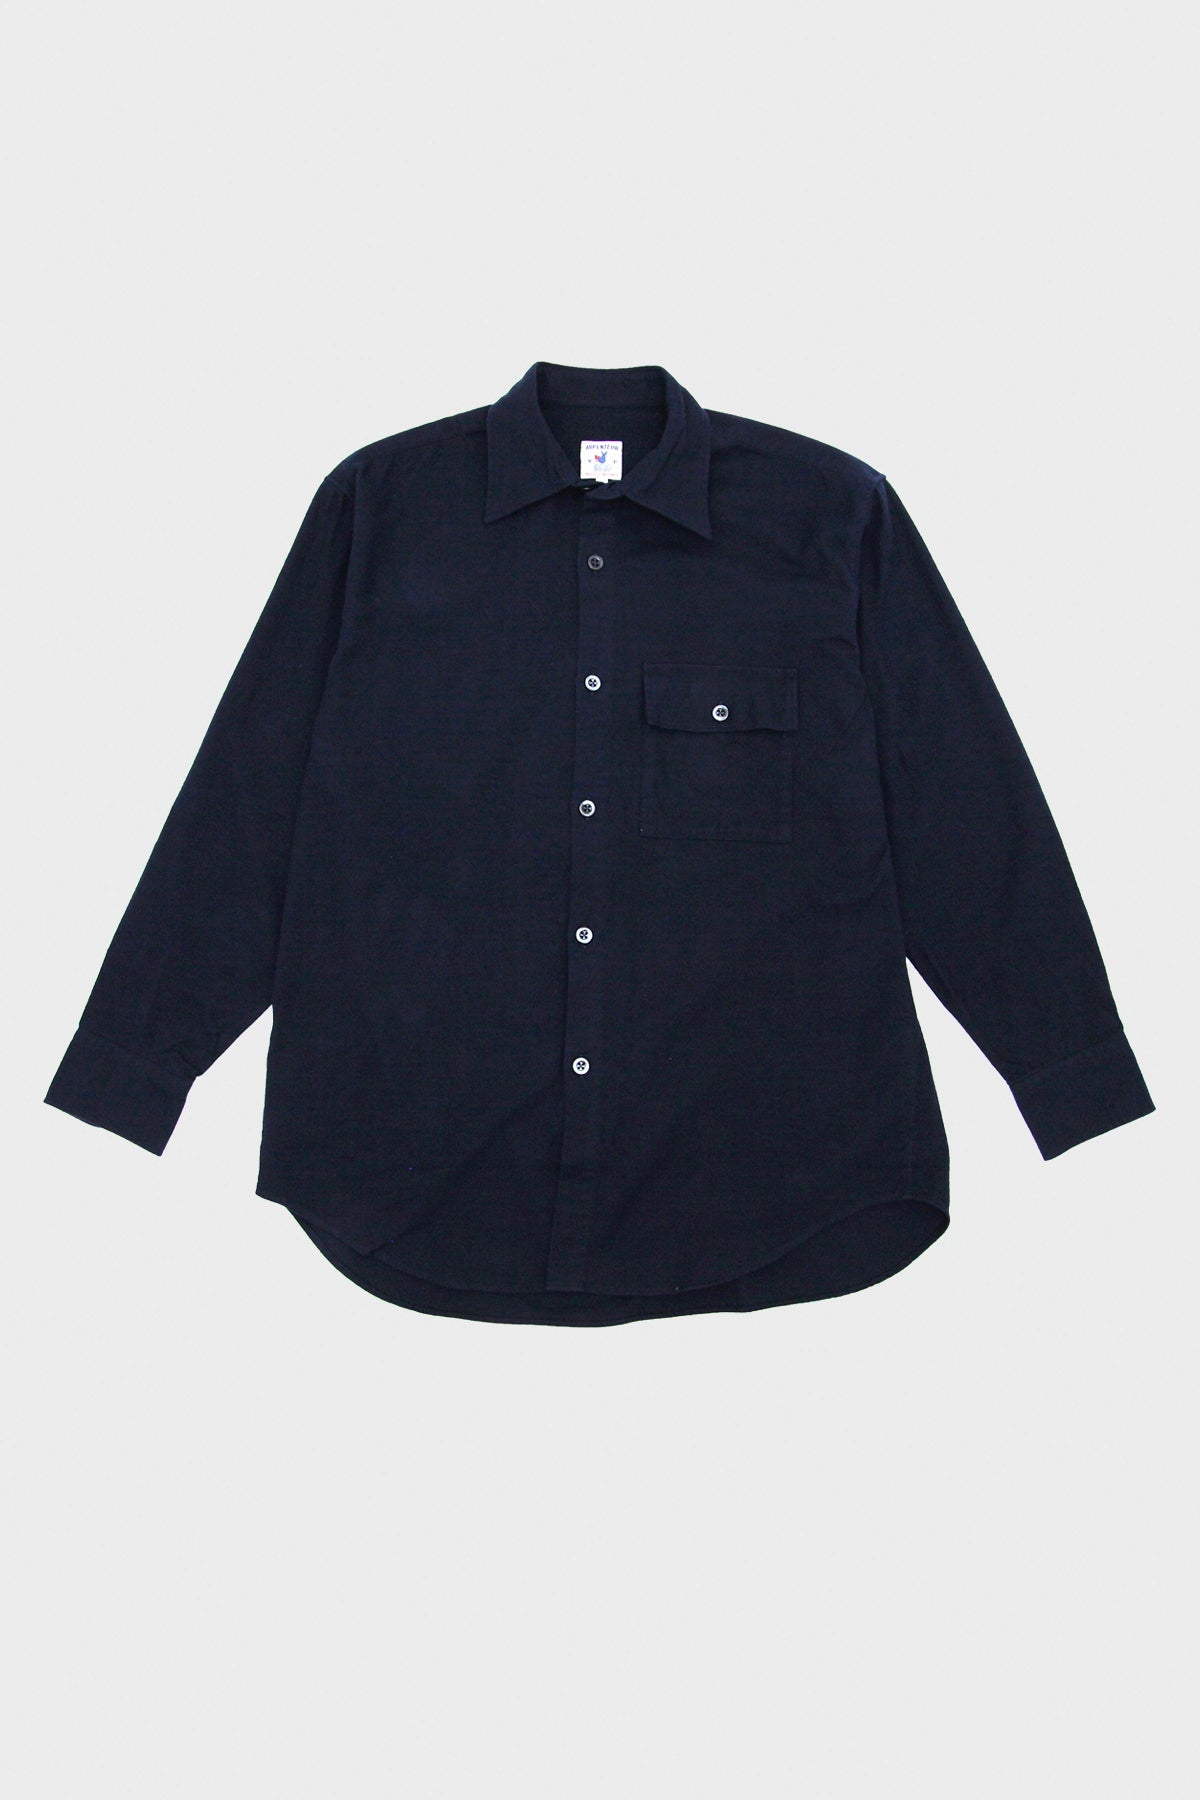 Arpenteur - Doris Shirt - Navy Cotton Flannel - Canoe Club